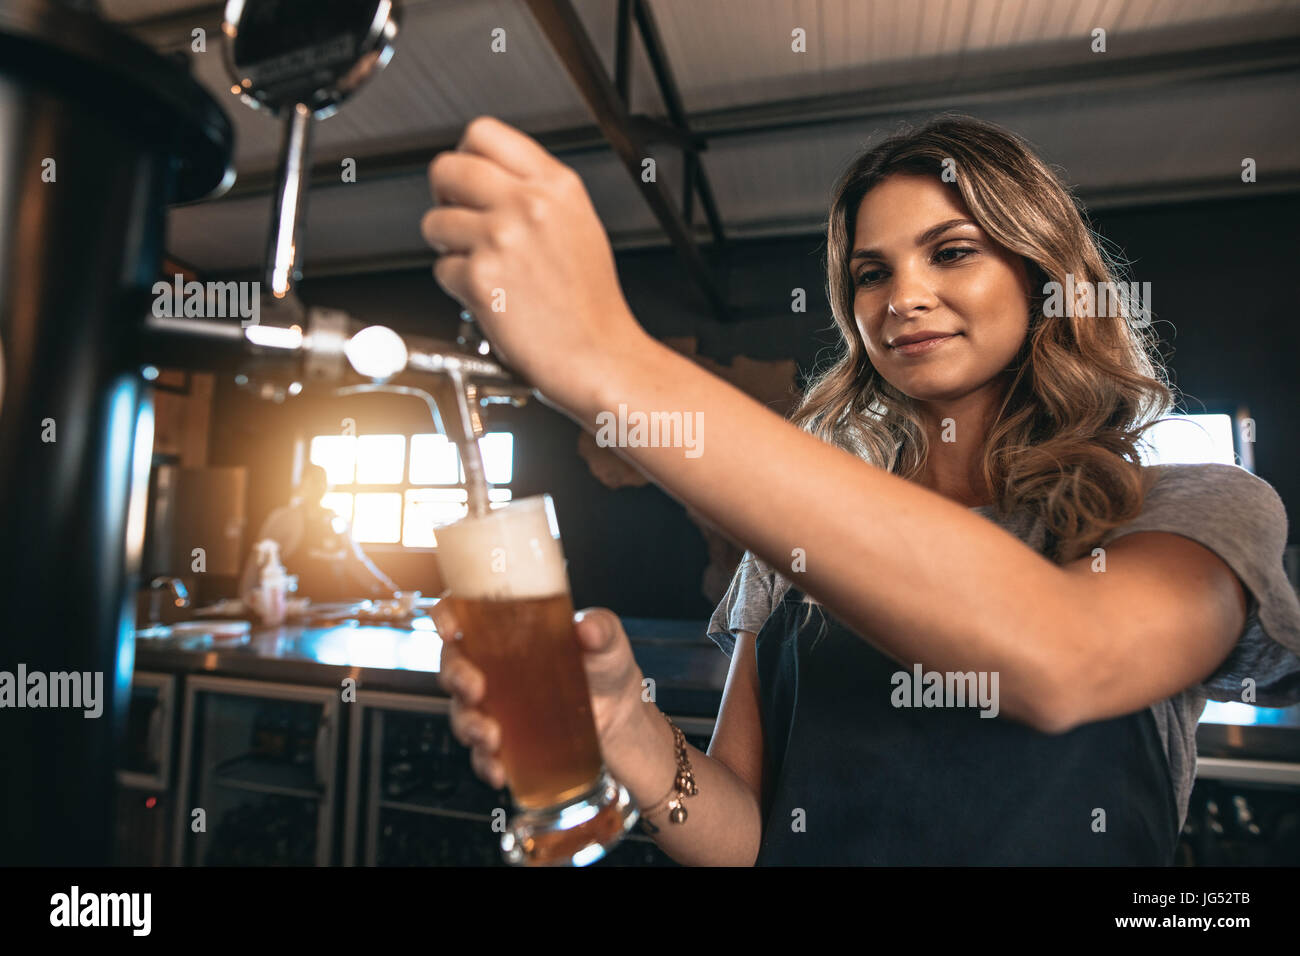 Young woman dispensing beer in a bar from metal spigots. Beautiful female bartender tapping beer in bar. - Stock Image